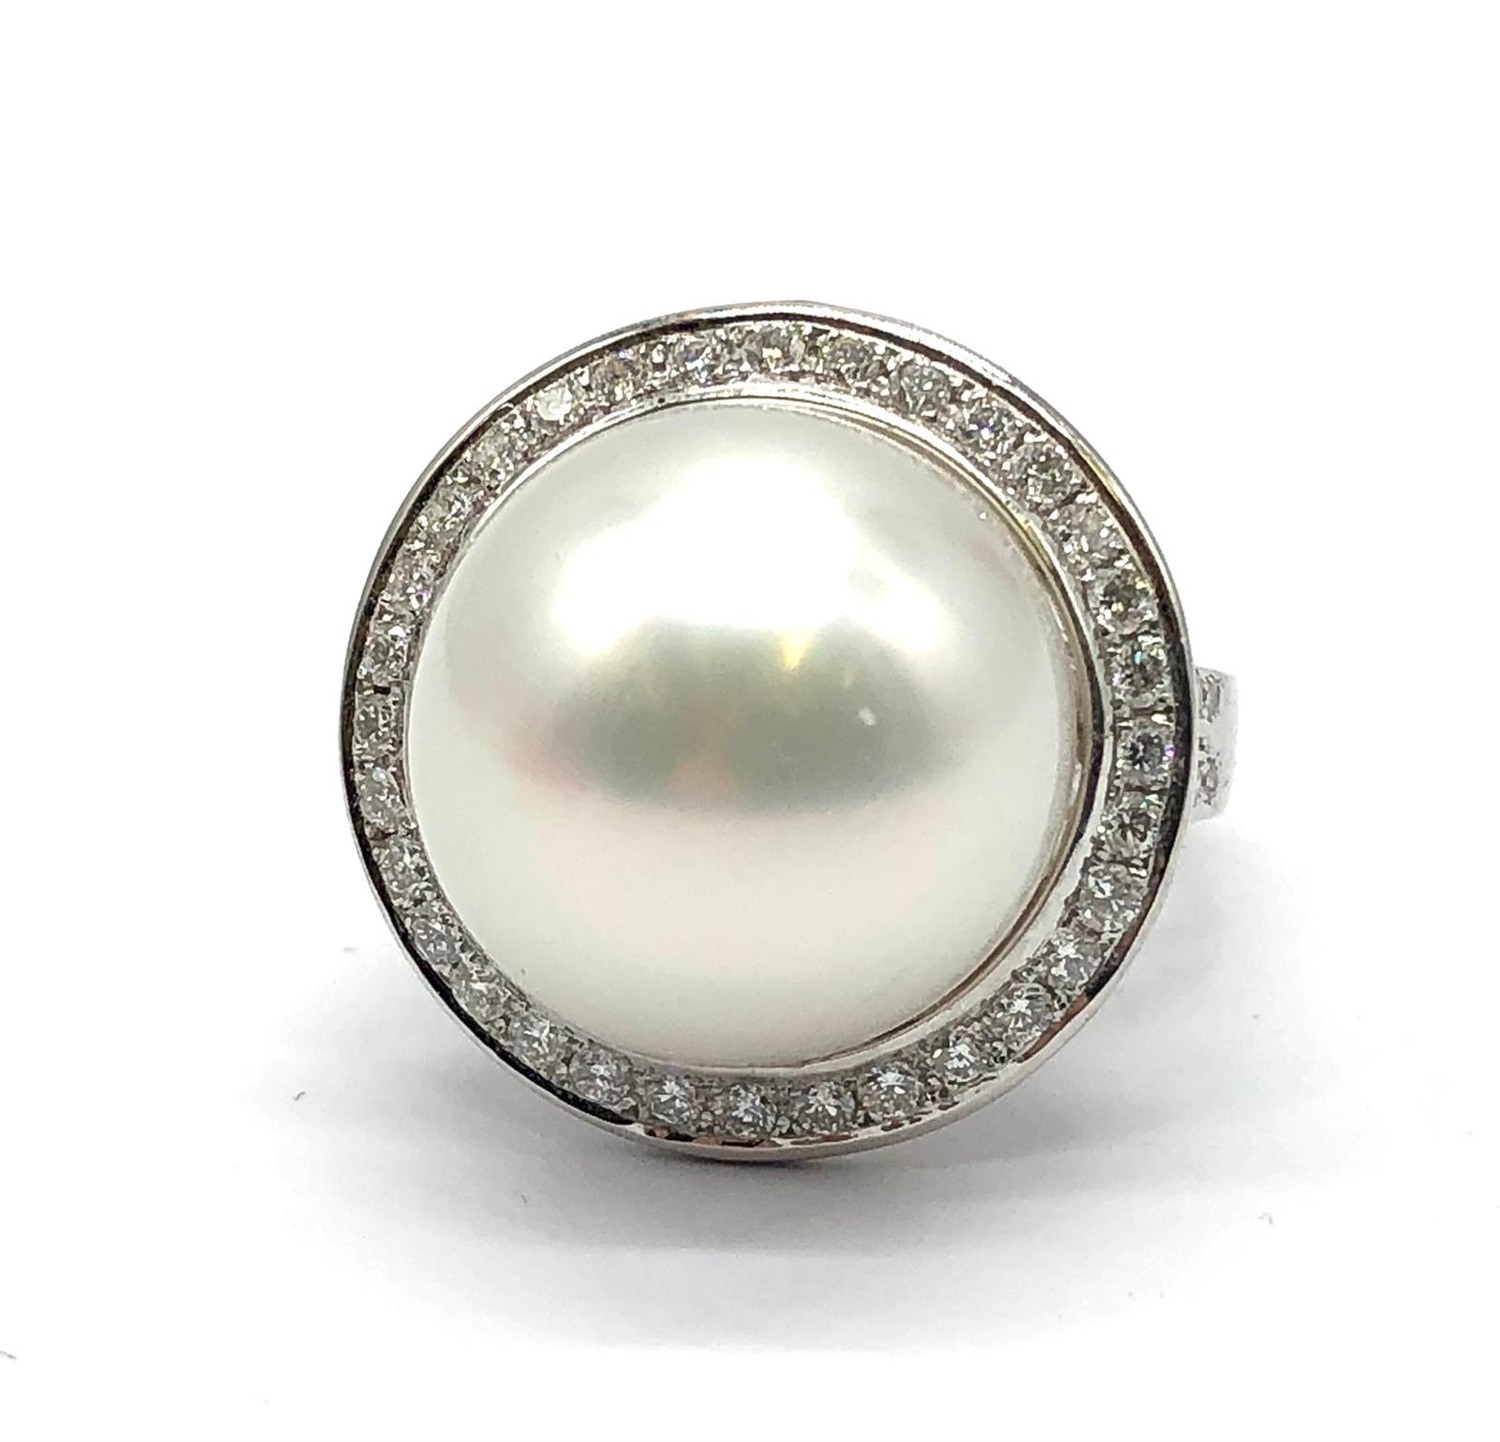 A large Kimoto pearl (17mm diameter) ring set in diamond and 18ct white gold ring, weight 14.43g and - Image 2 of 7